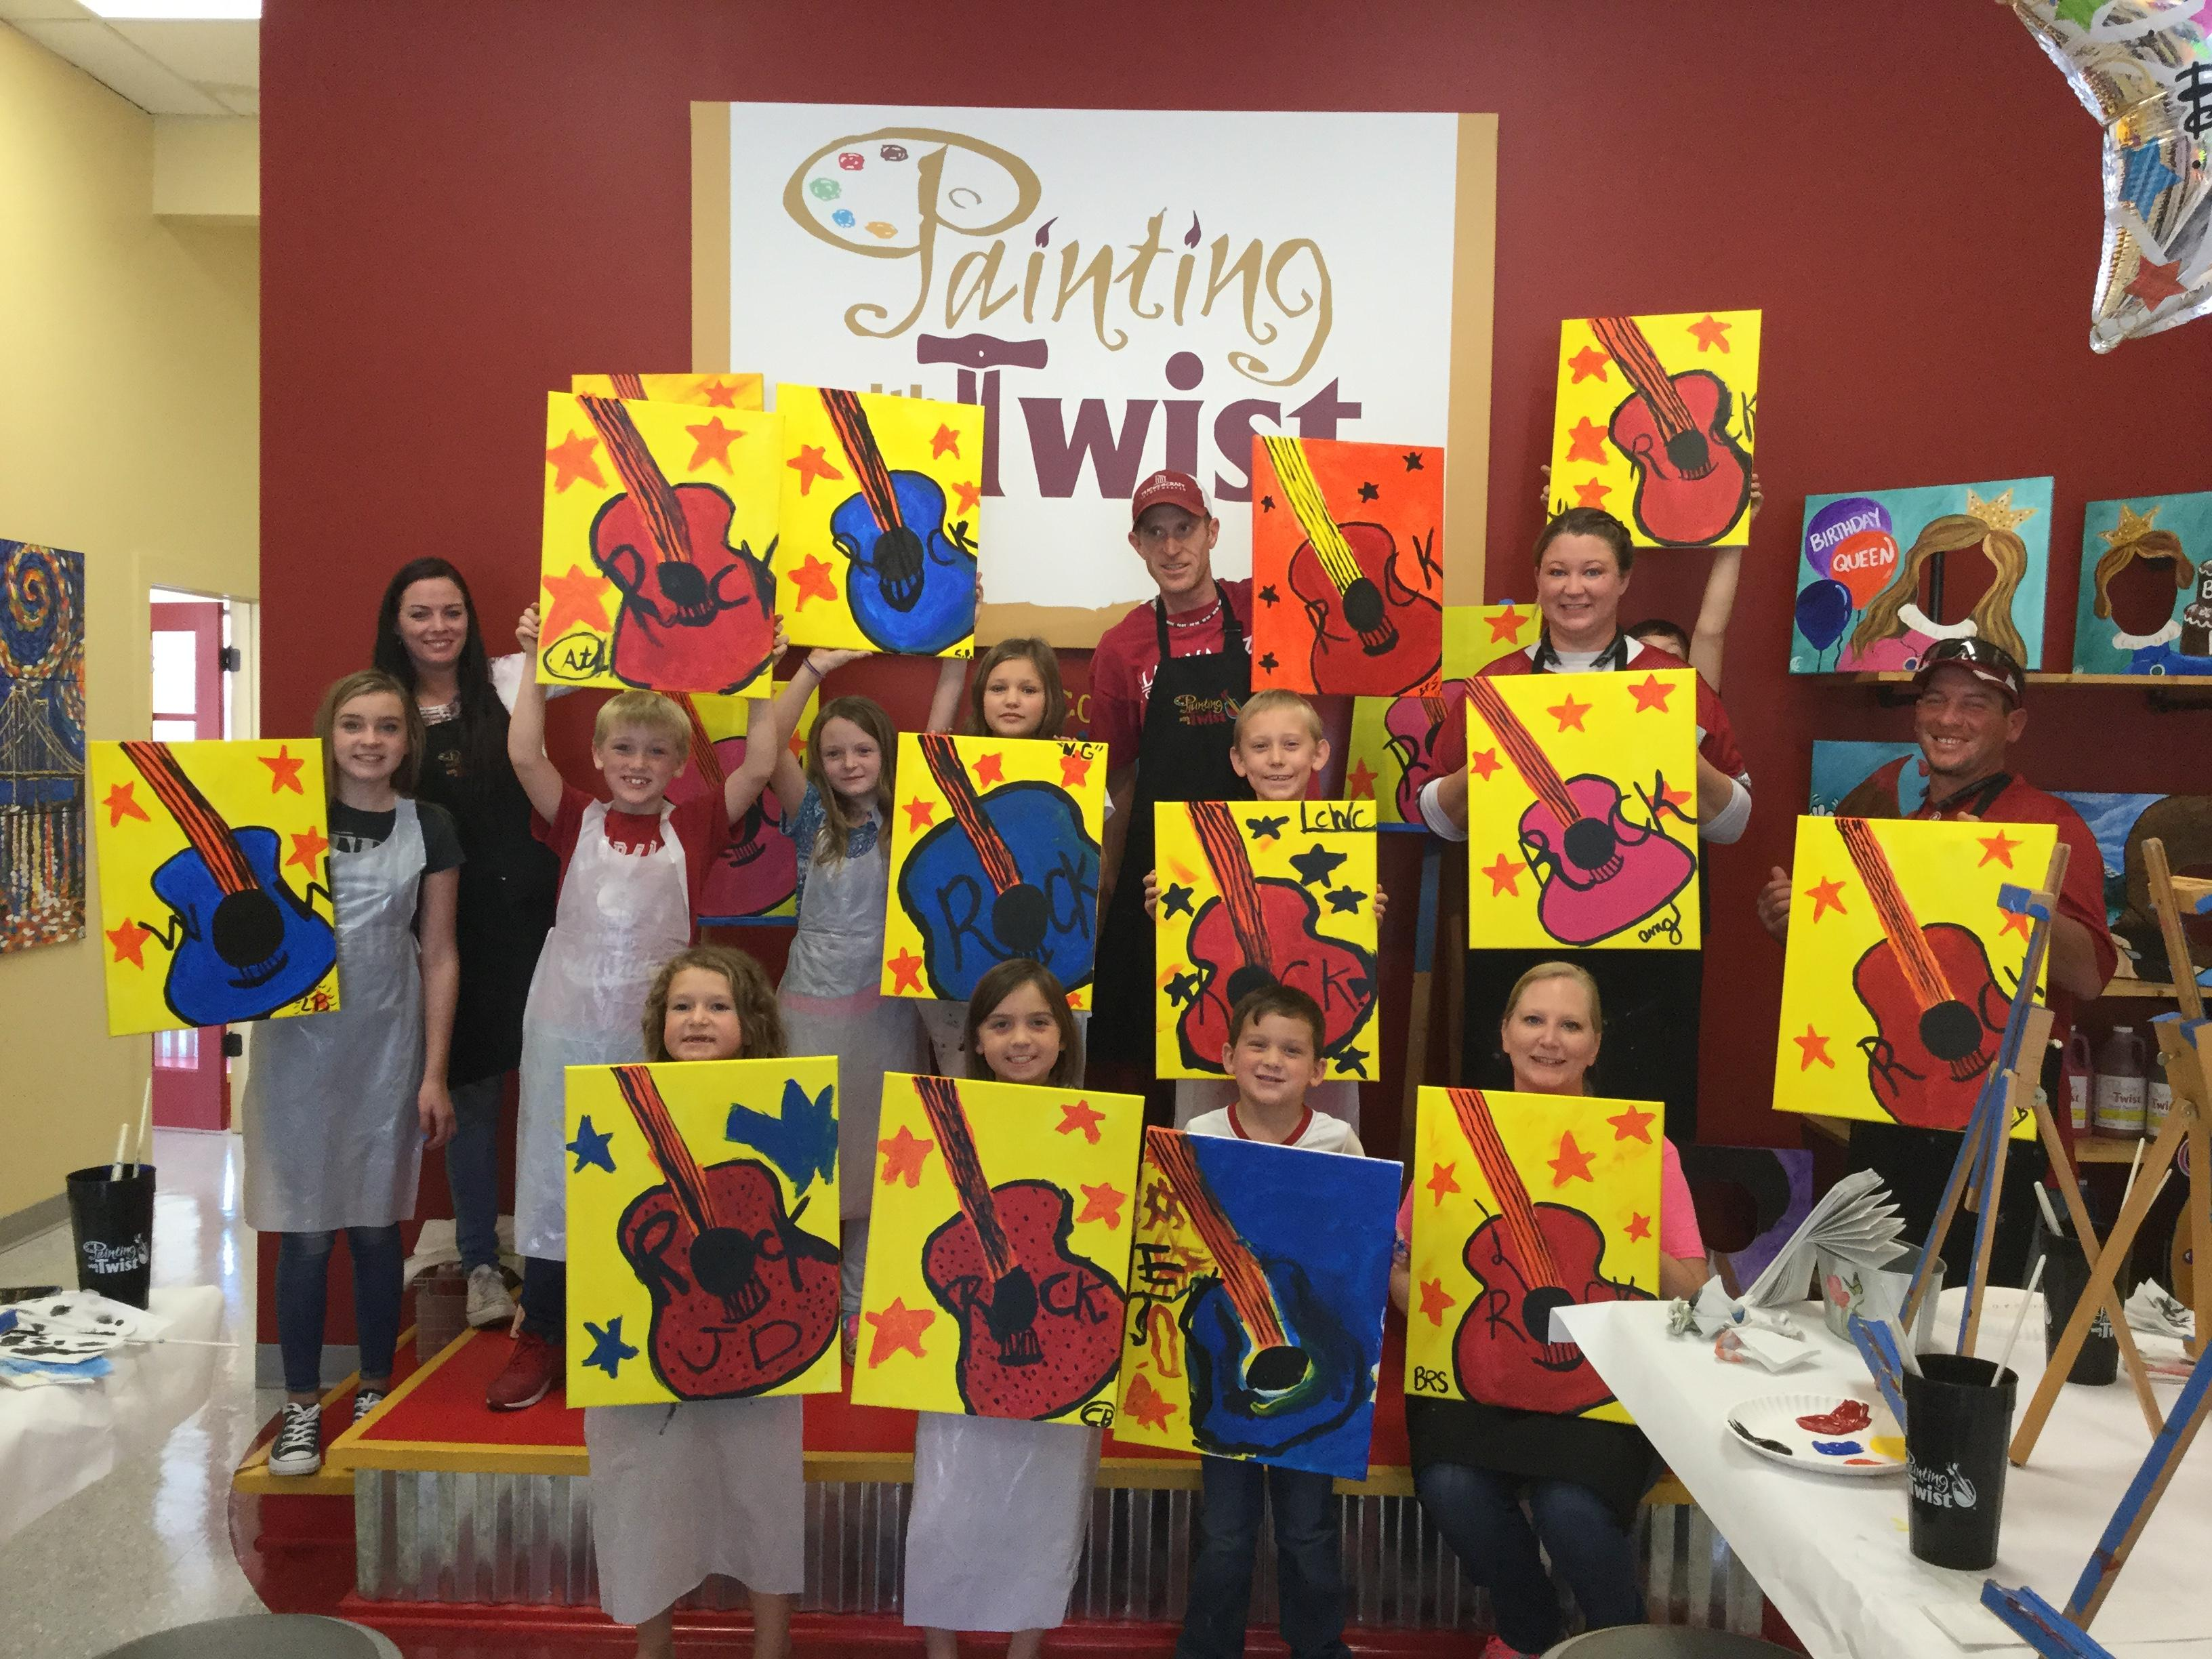 painting with a twist in columbus ga 31909